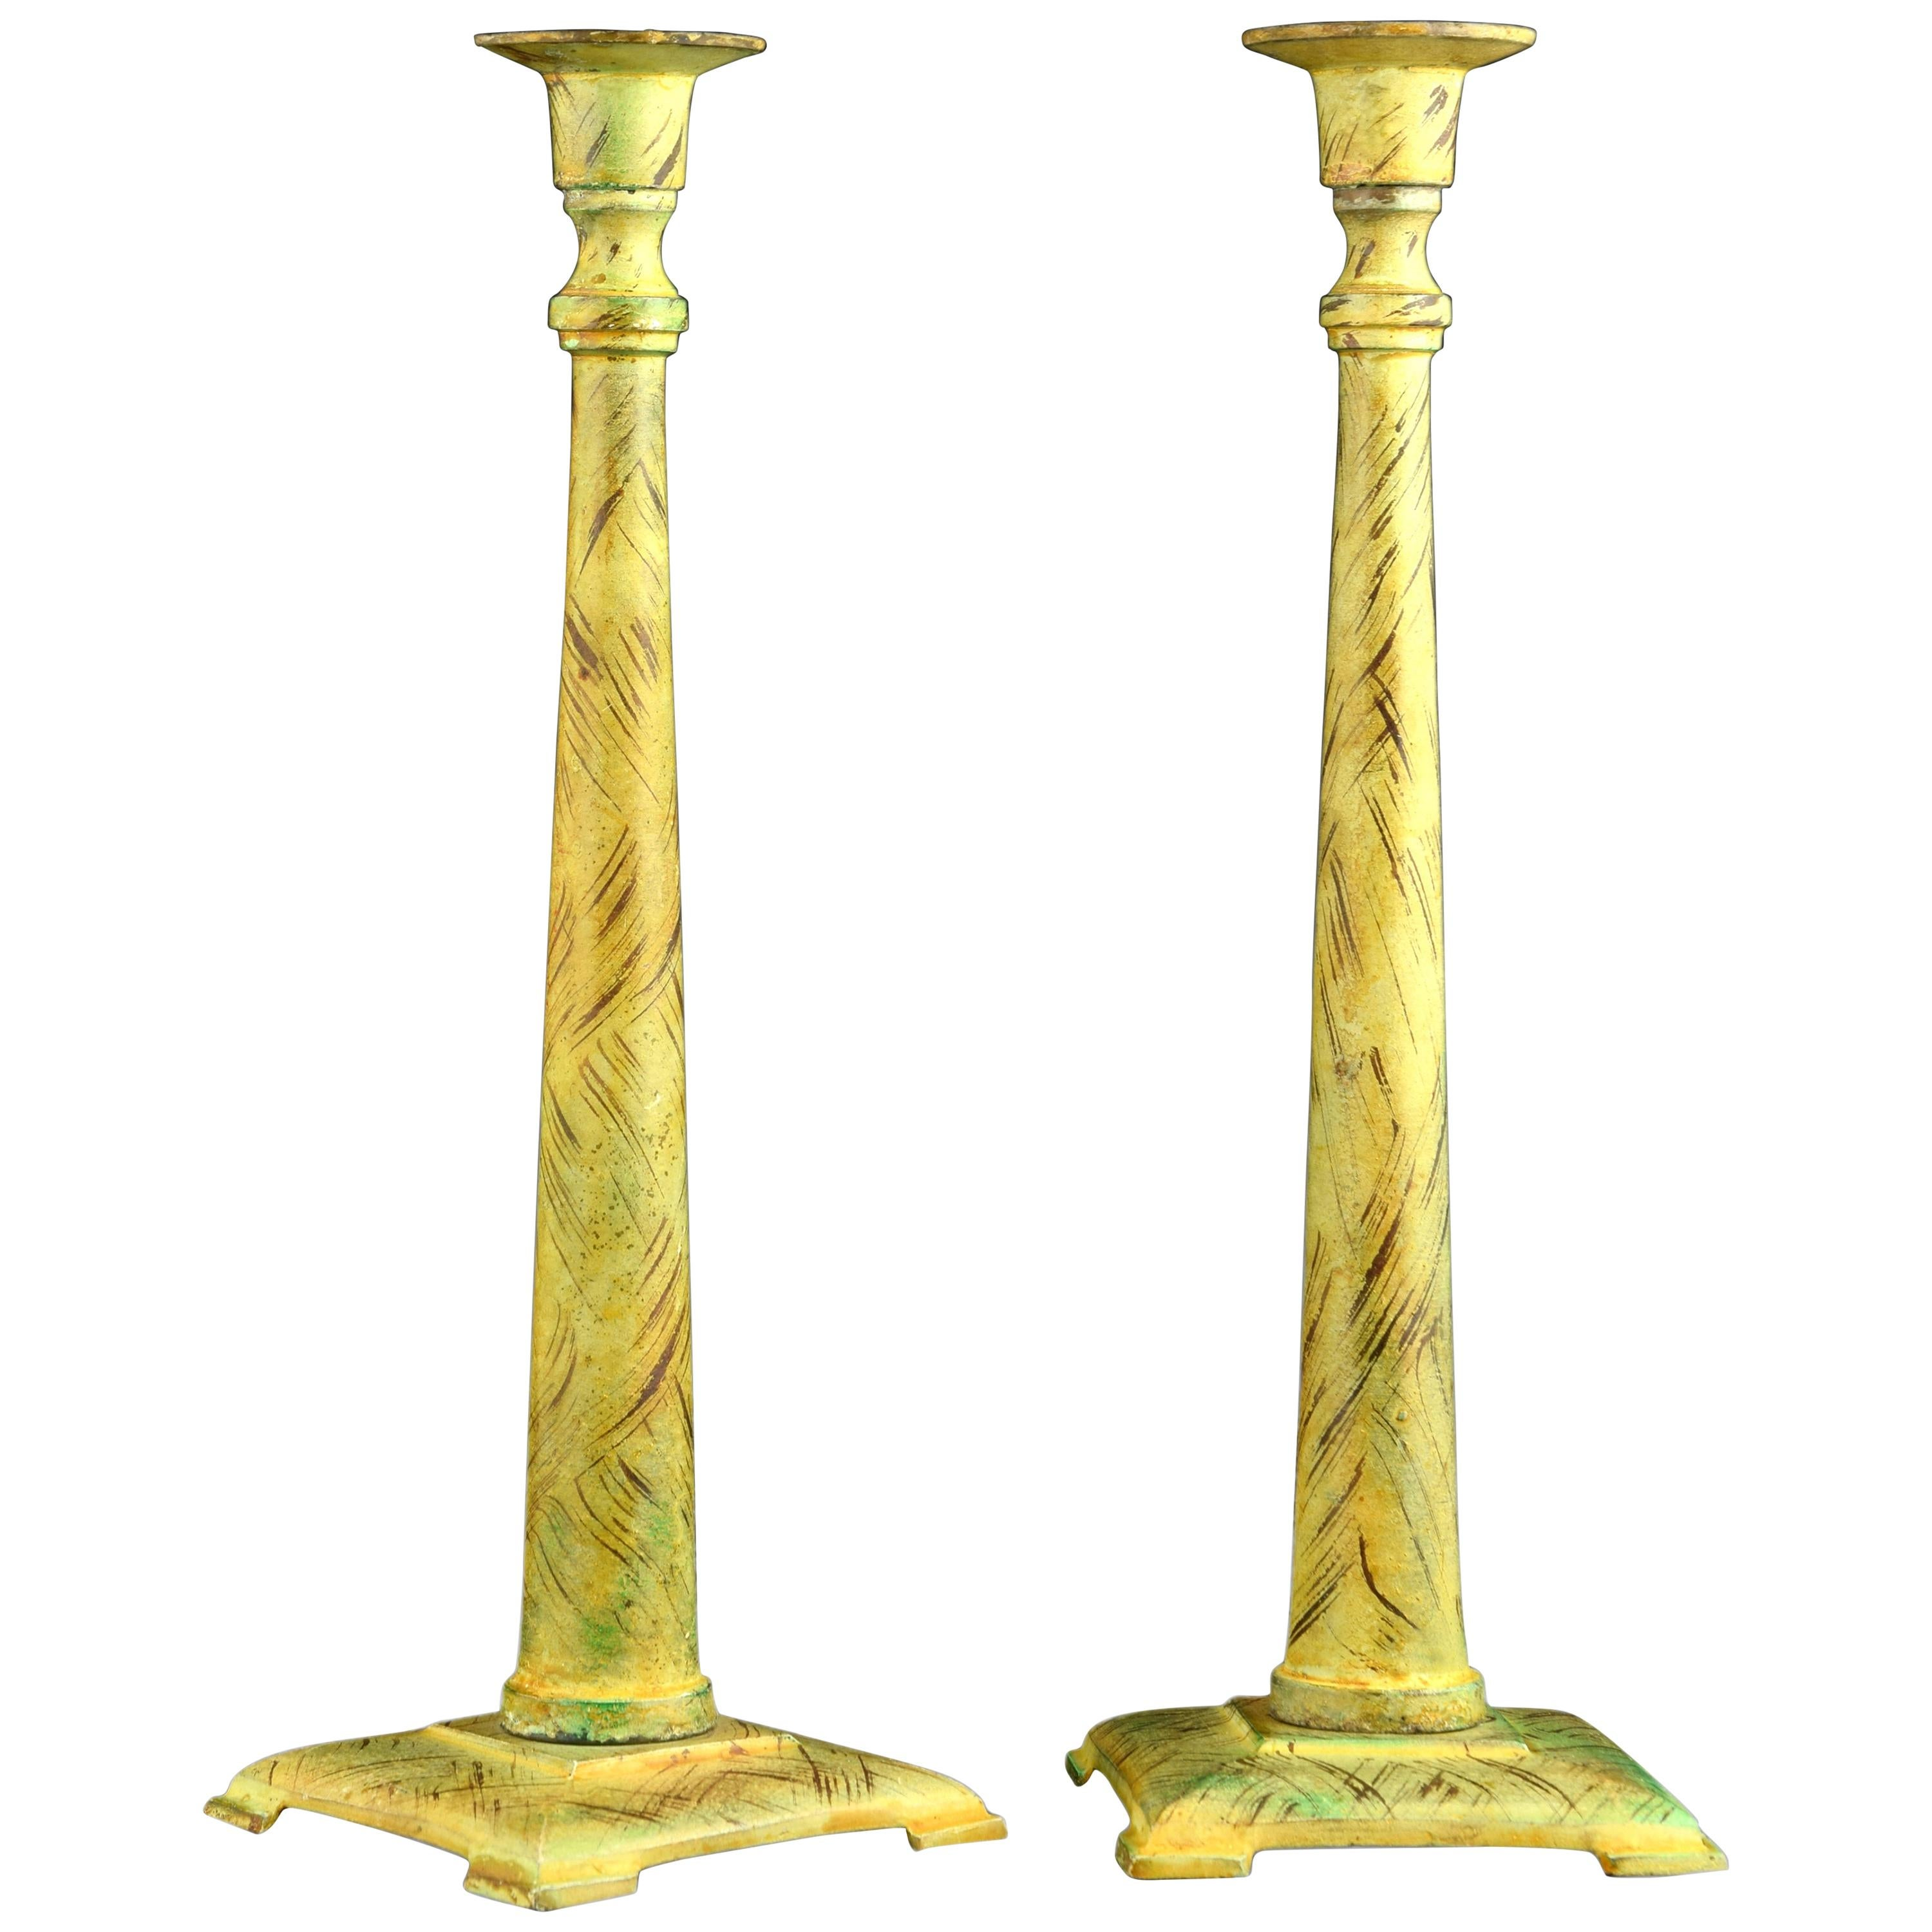 Pair of Candlesticks or Candleholders, Green Patinated Bronze